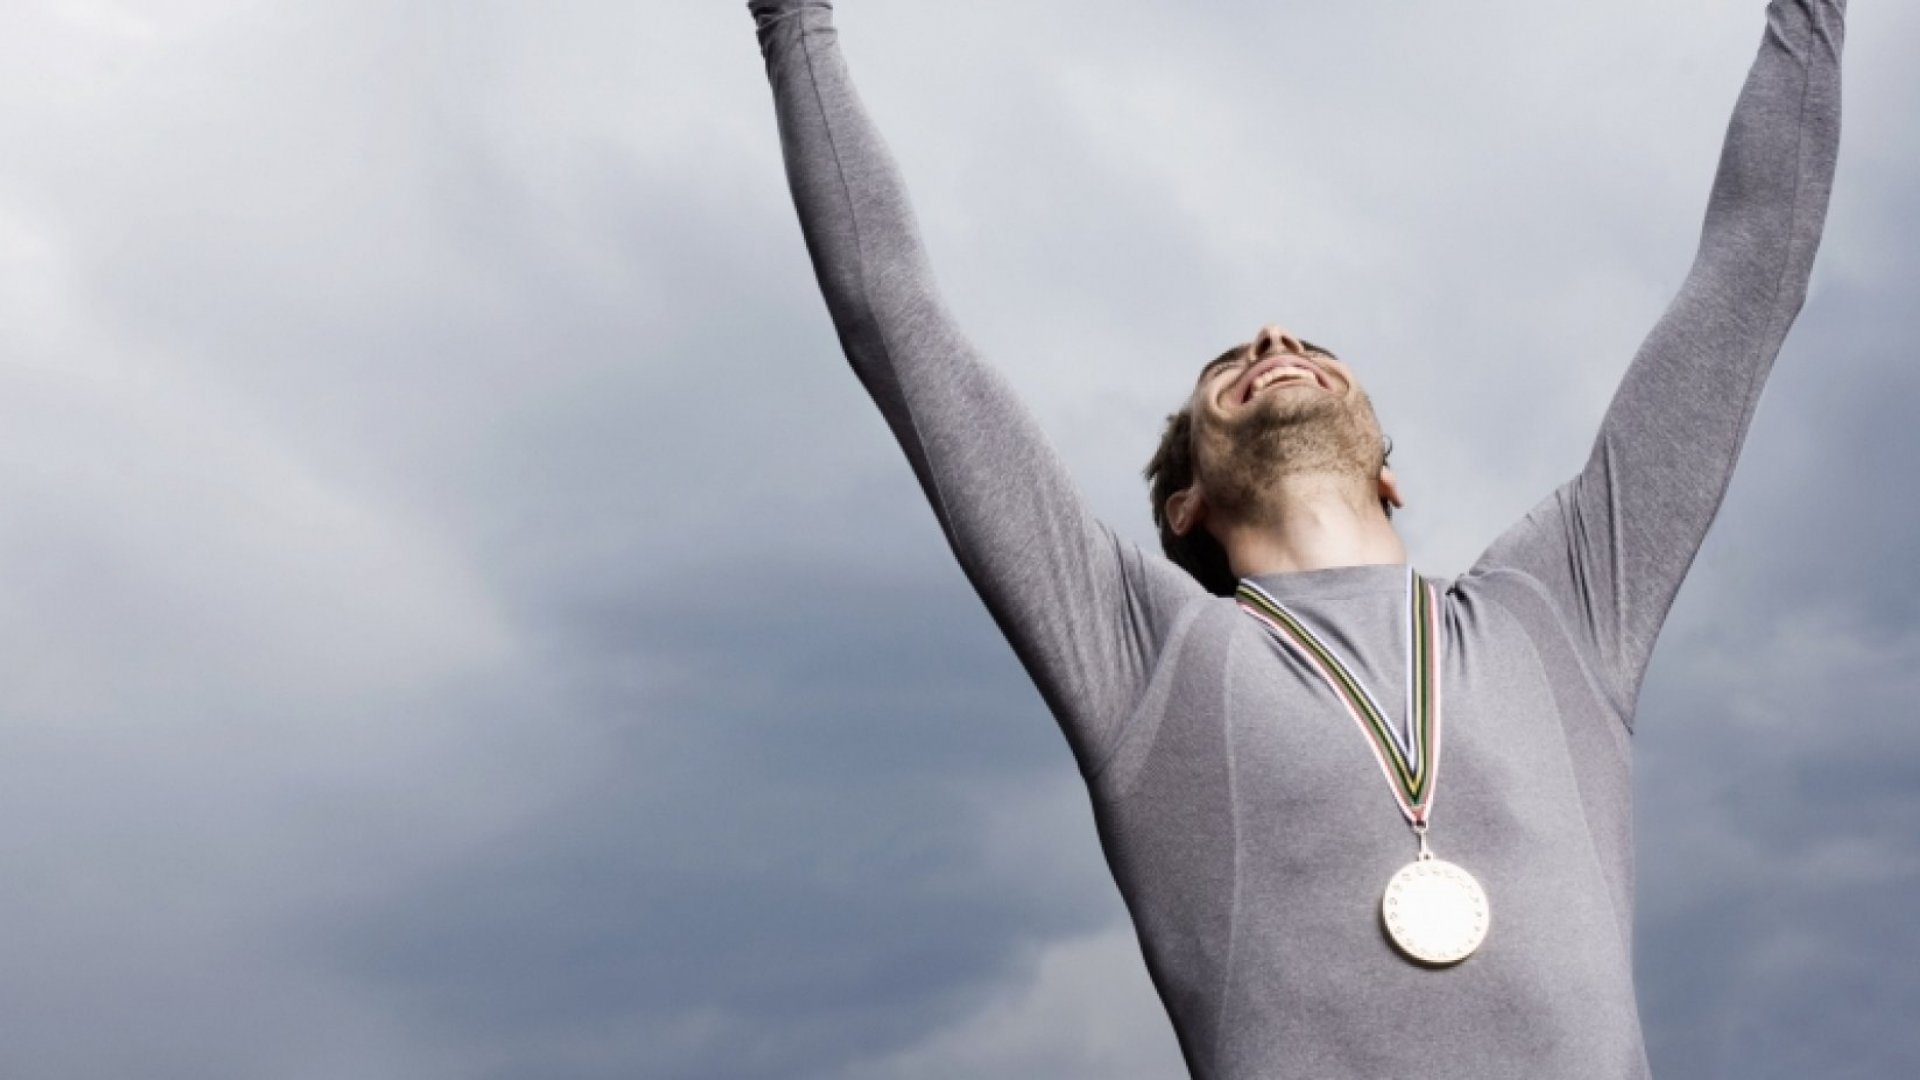 All Great Champions Share These 3 Attitudes, Study Says